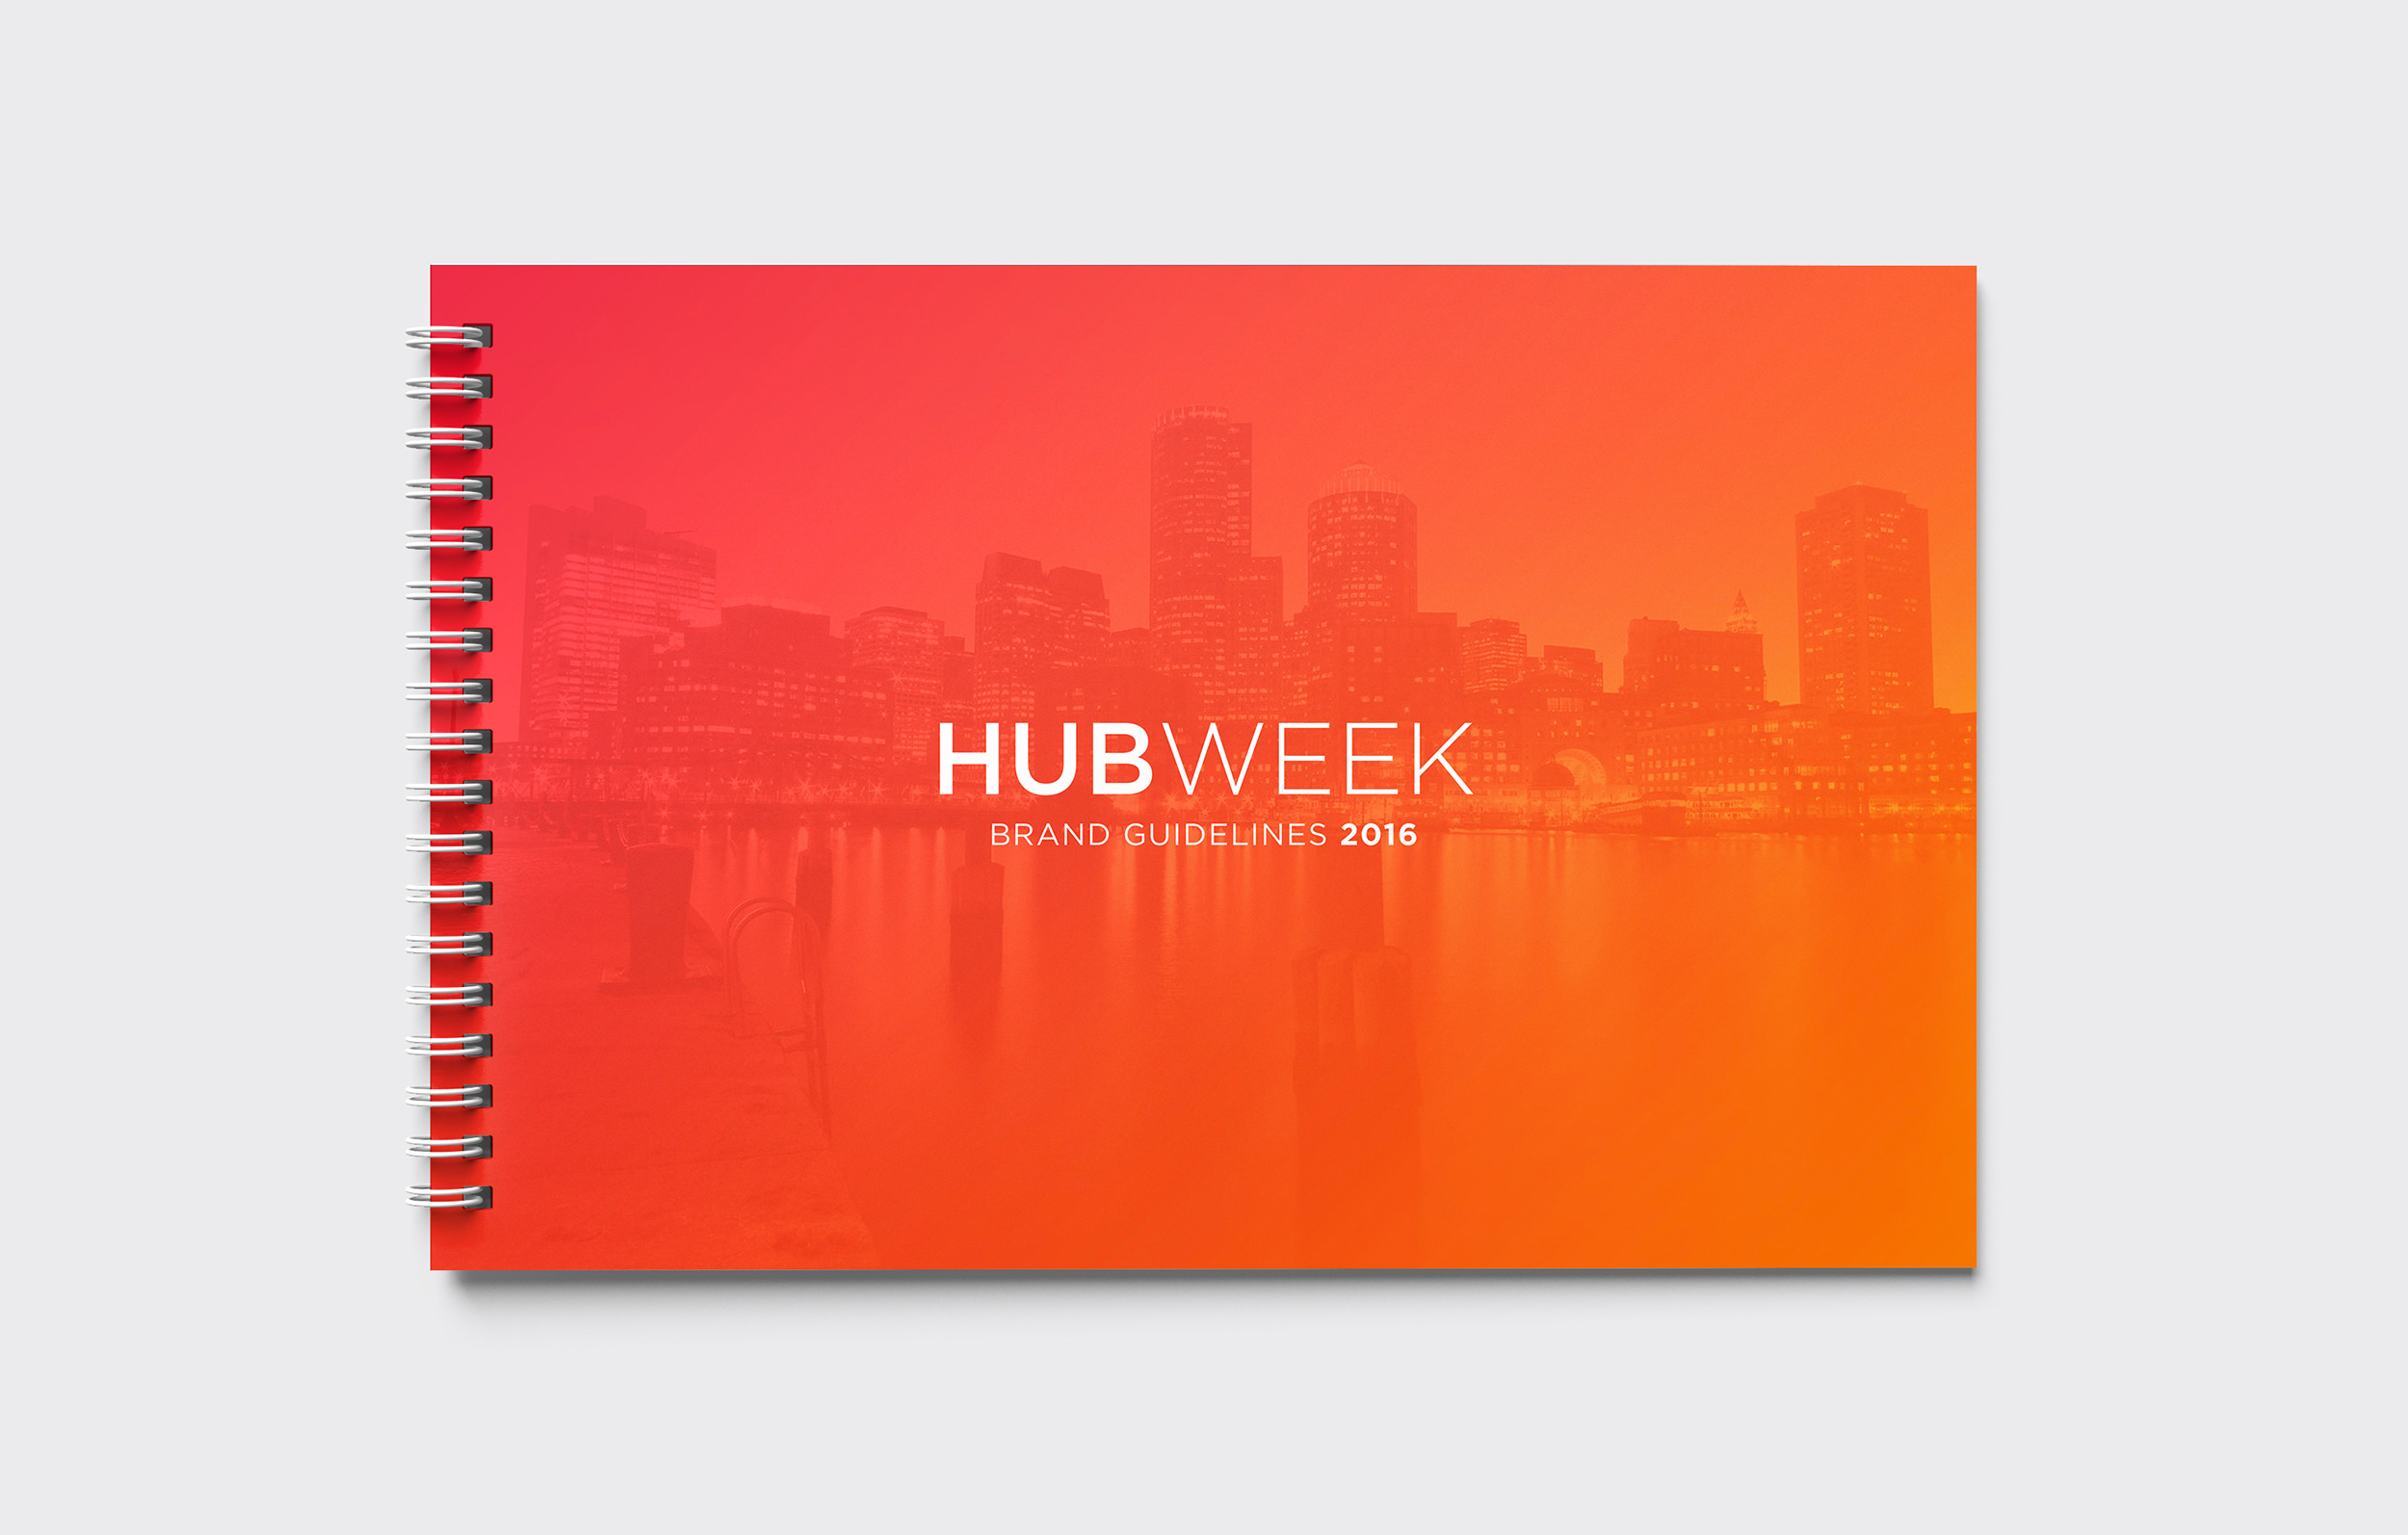 HUBweek Brand Guidelines Cover